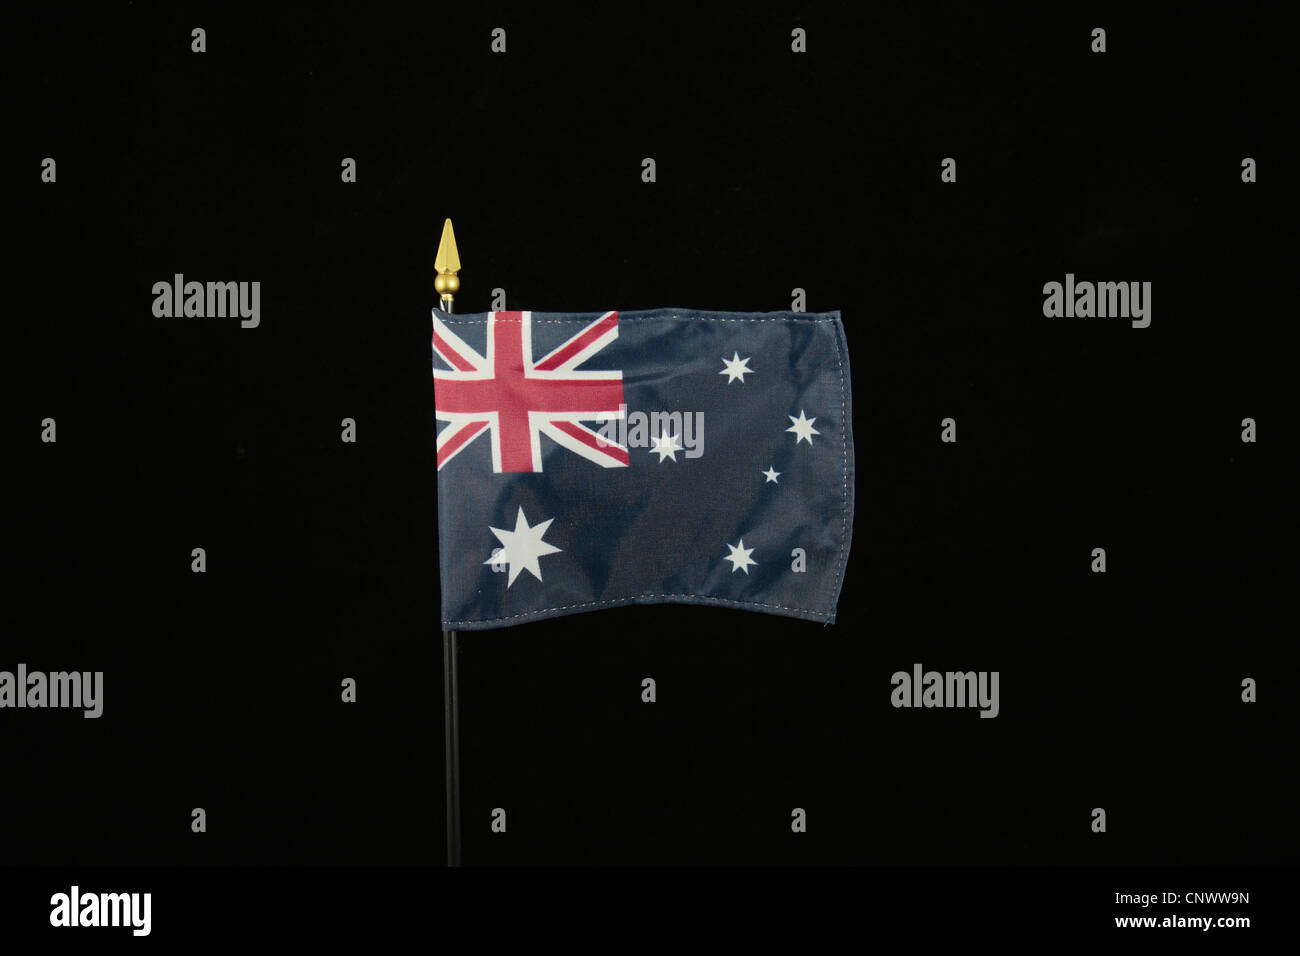 The national flag of Australia on a black background. - Stock Image